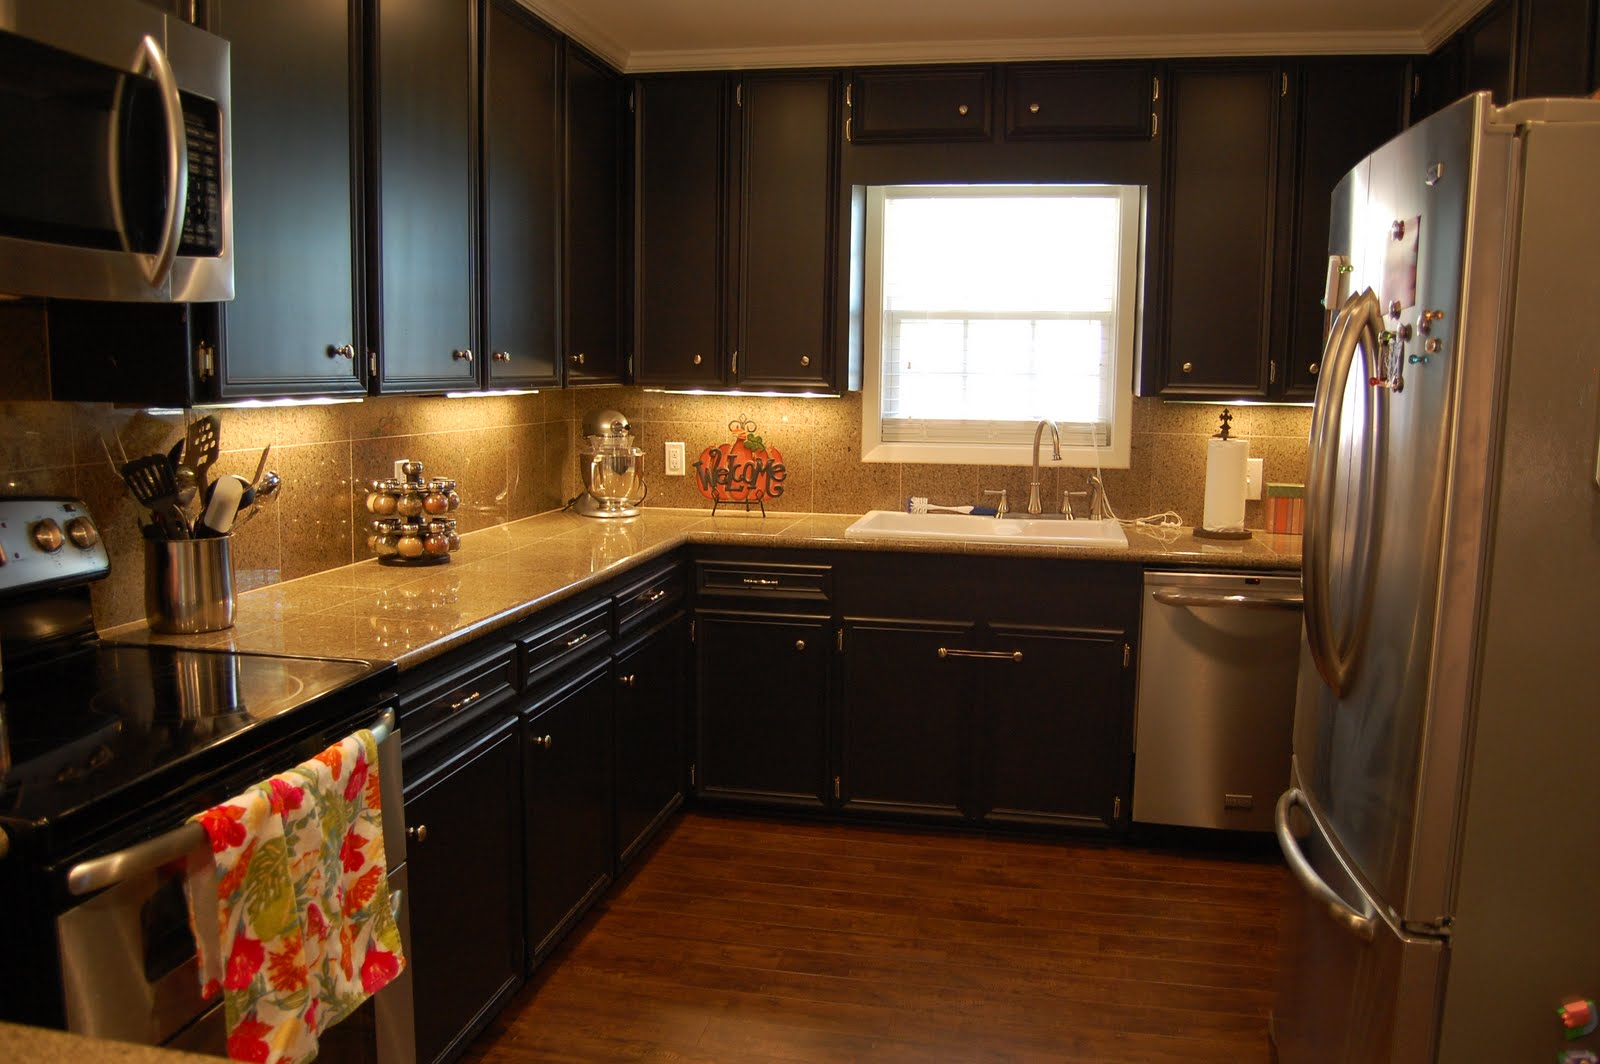 painted kitchen cabinets with black appliances - photo #9